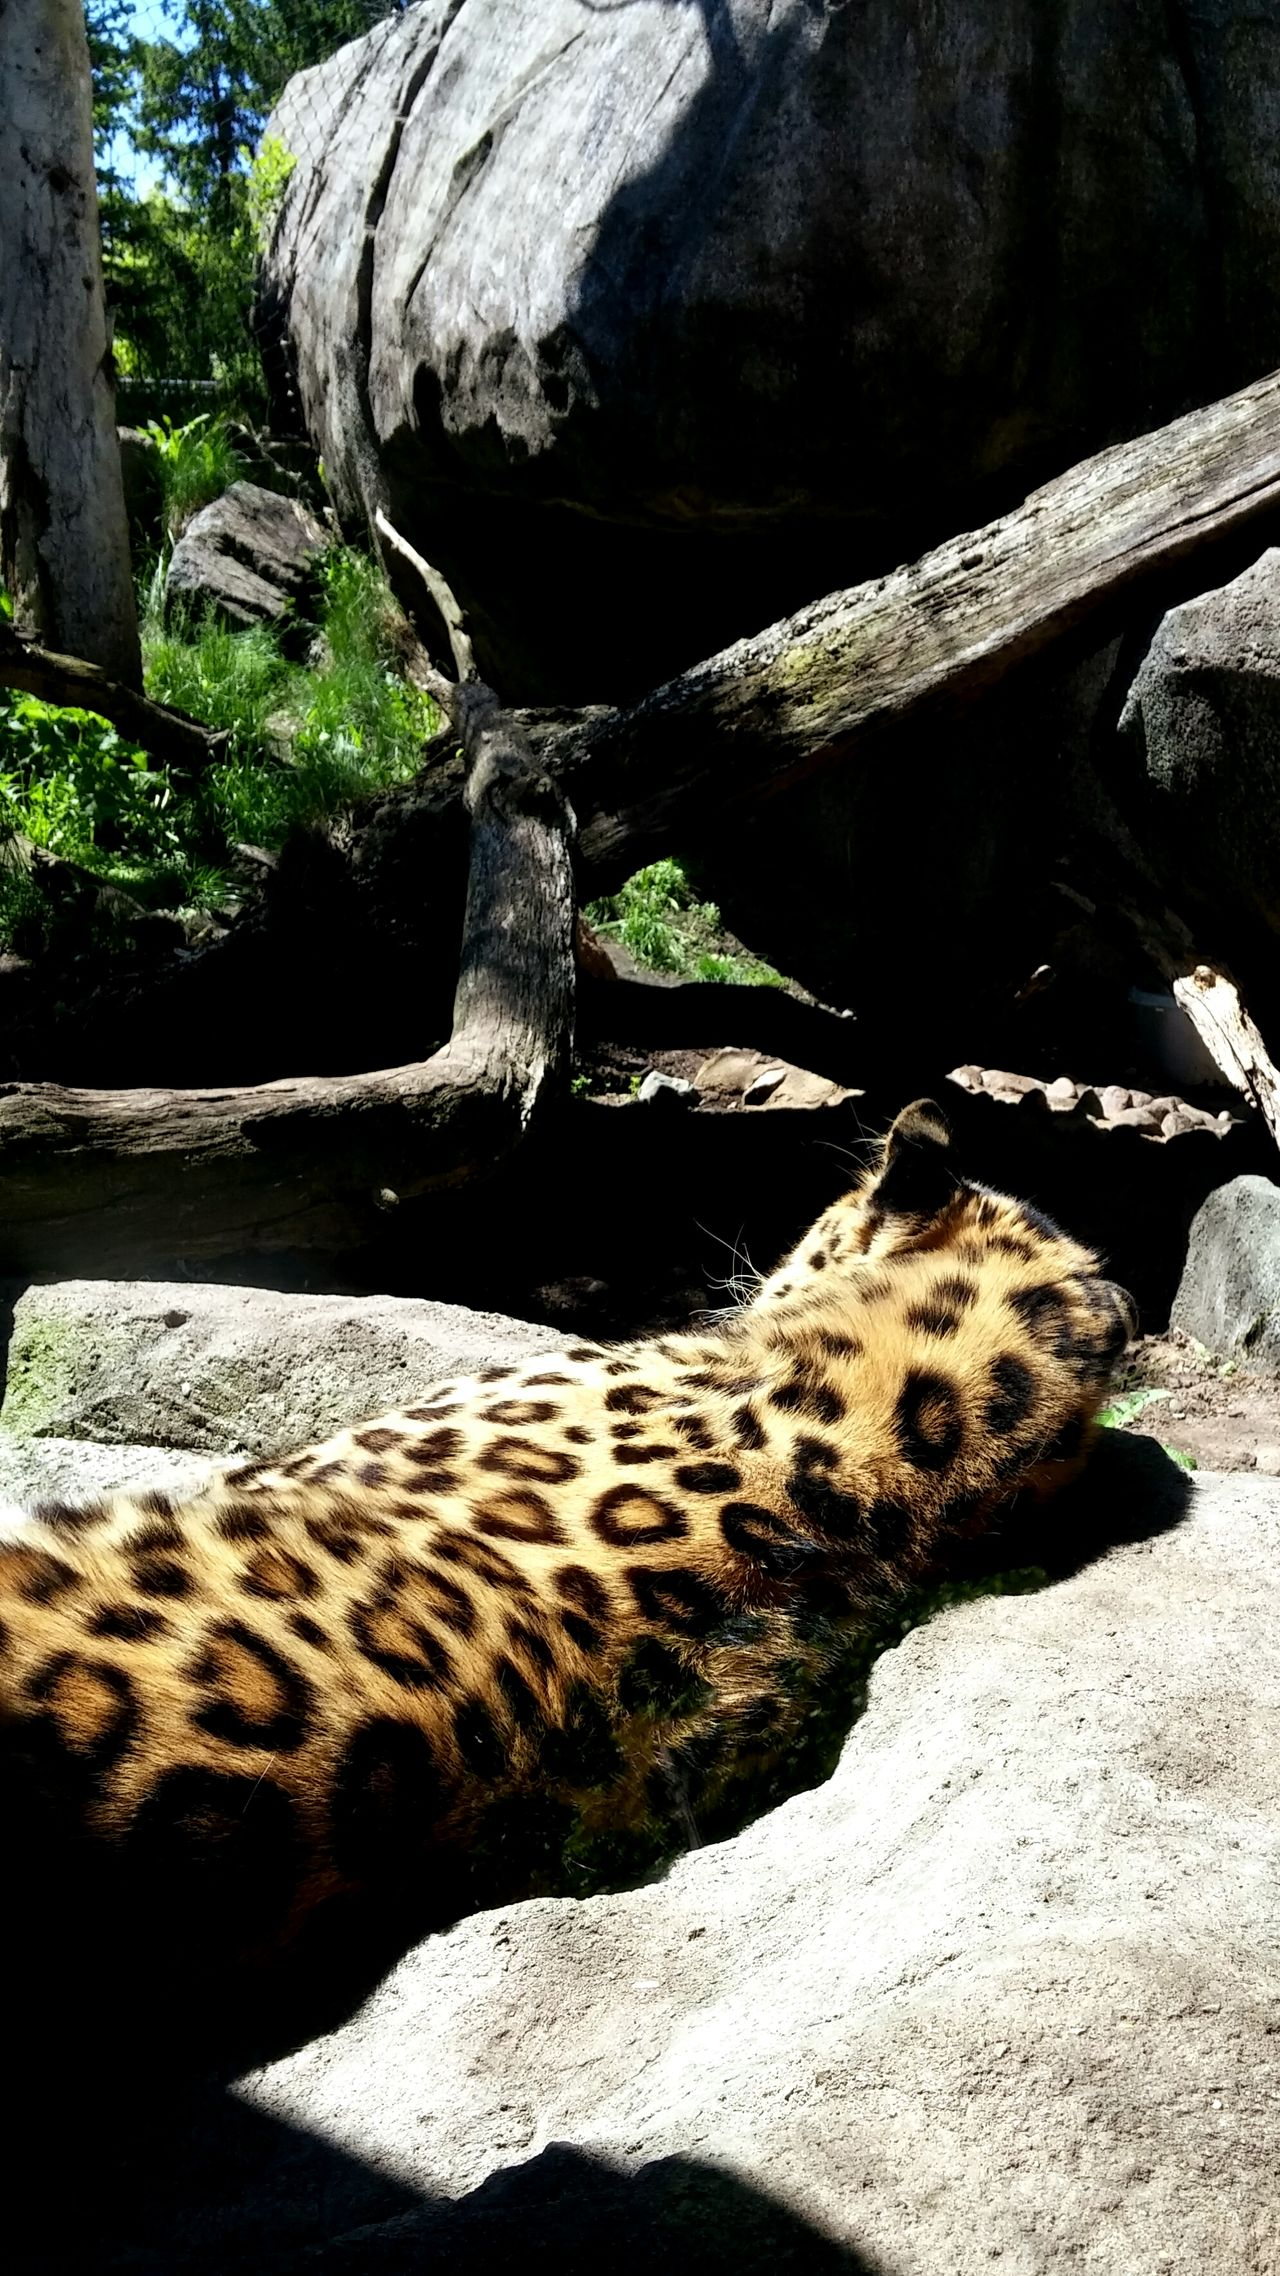 A beautiful day at the Zoo! MnZoo Zoophotography Zoo Animals  Leopard